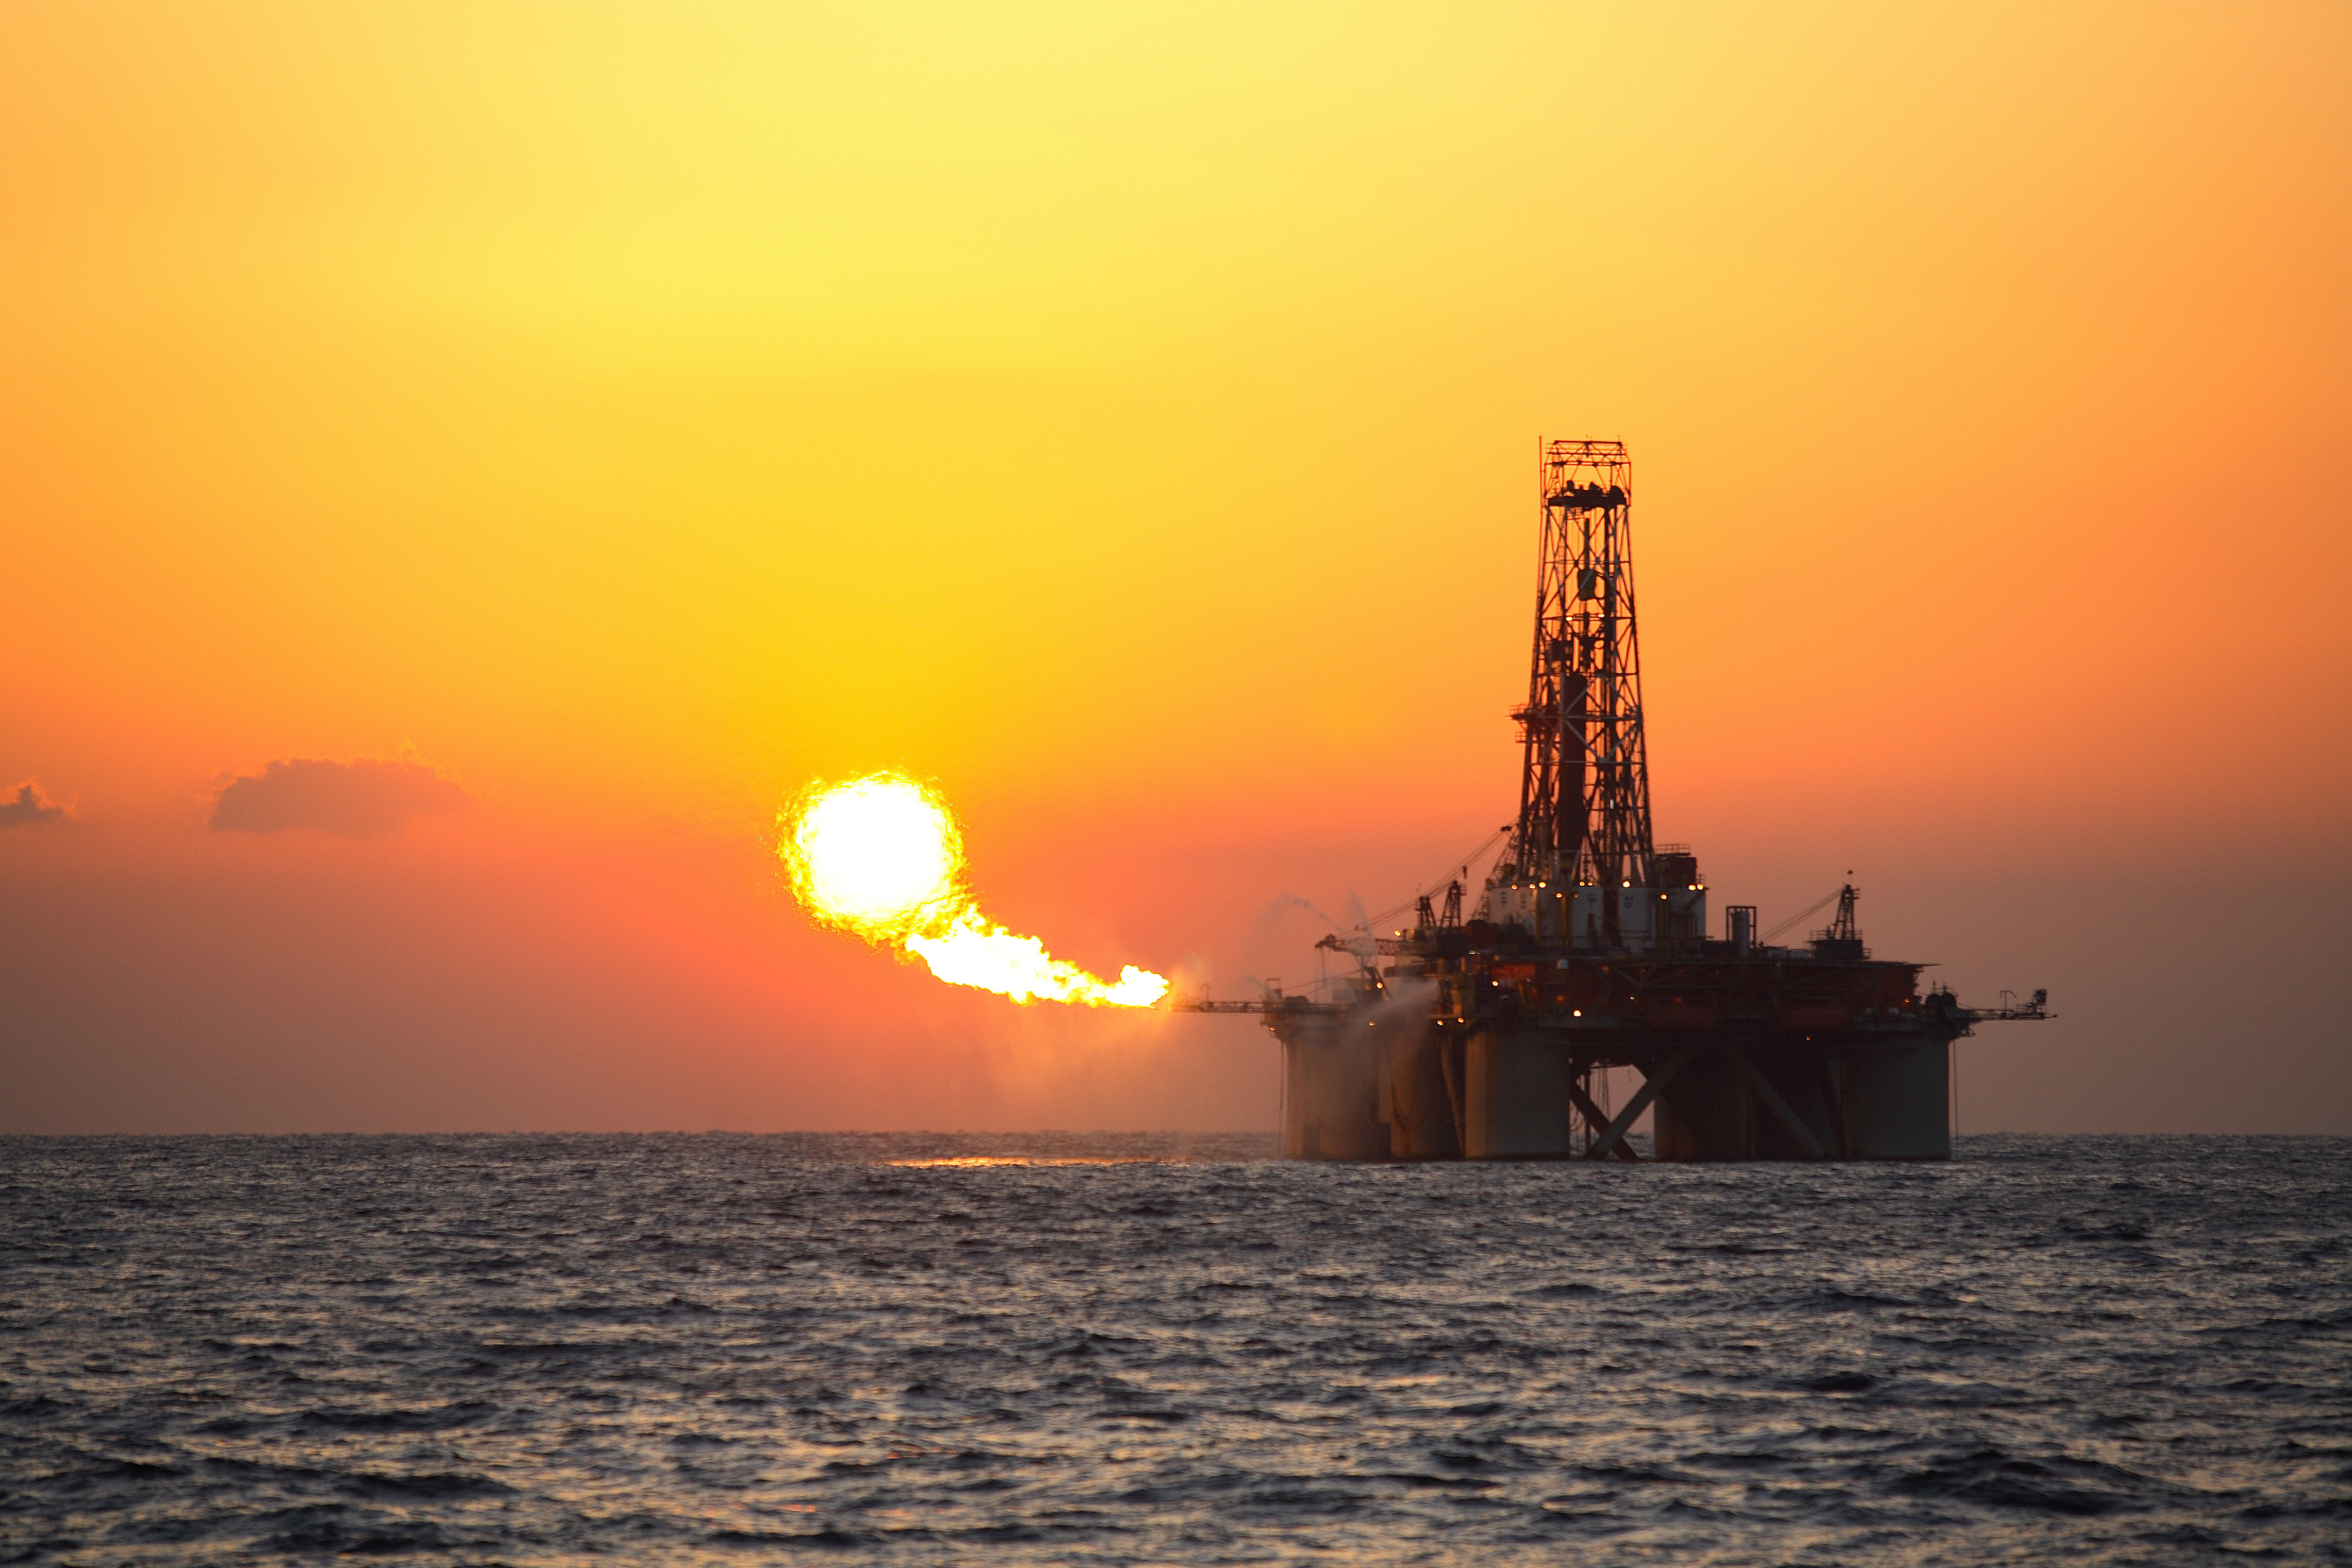 rigsco offshore onshore rig broker solutions for the oil and